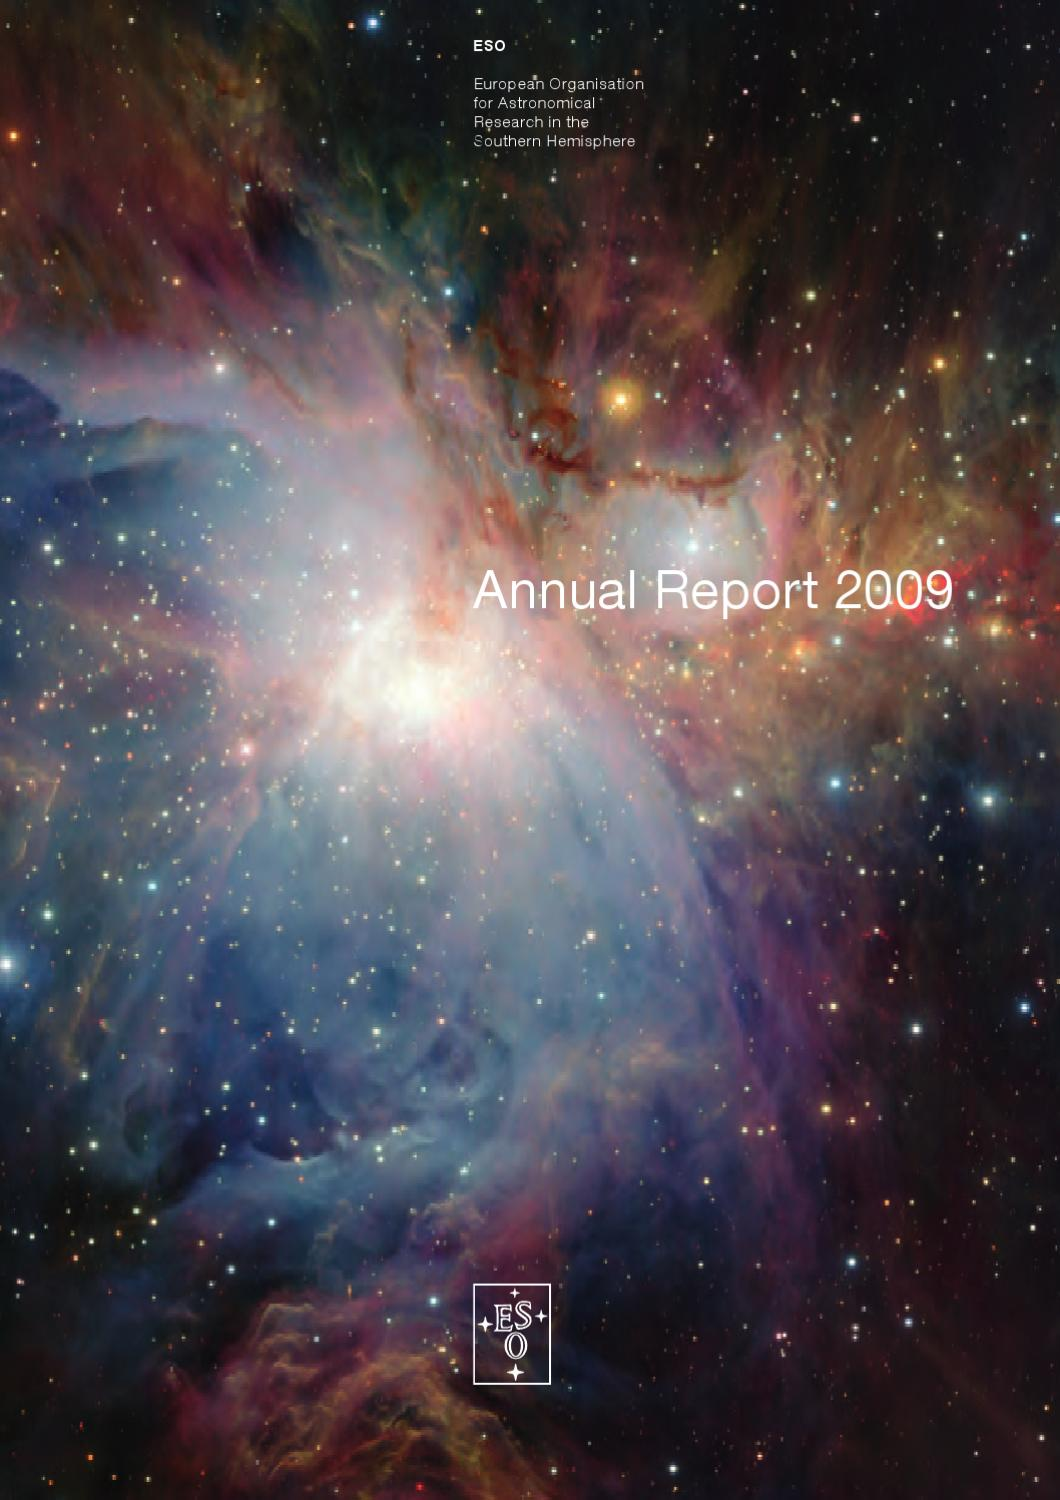 ESO Annual Report 2009 by European Southern Observatory - issuu